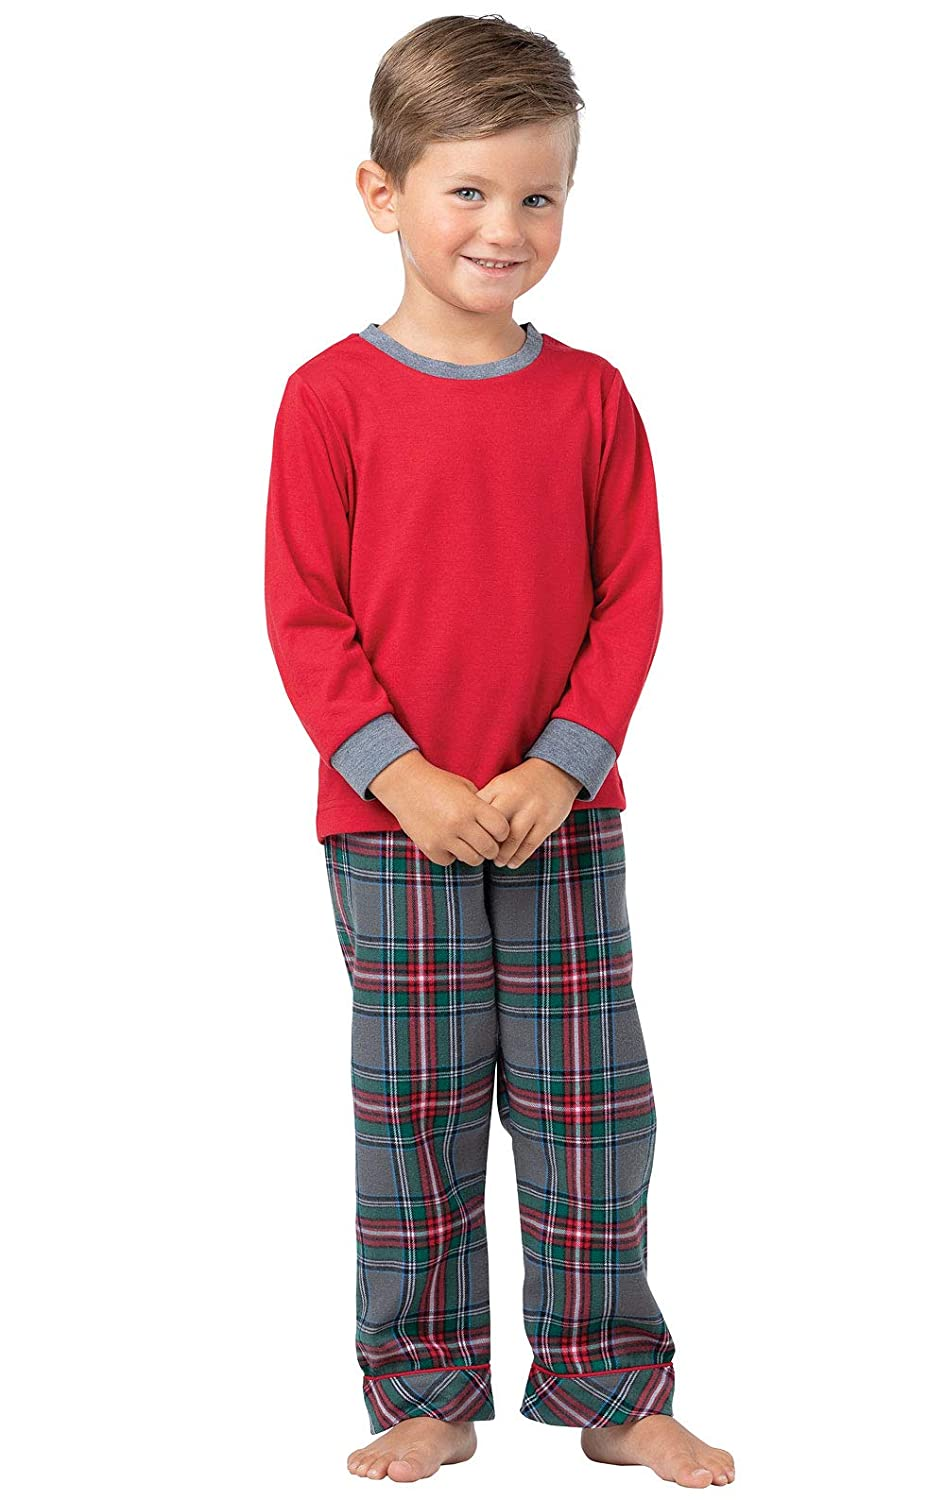 PajamaGram Toddlers' Flannel Classic Plaid Pajamas Long-Sleeved Top GAMV01926